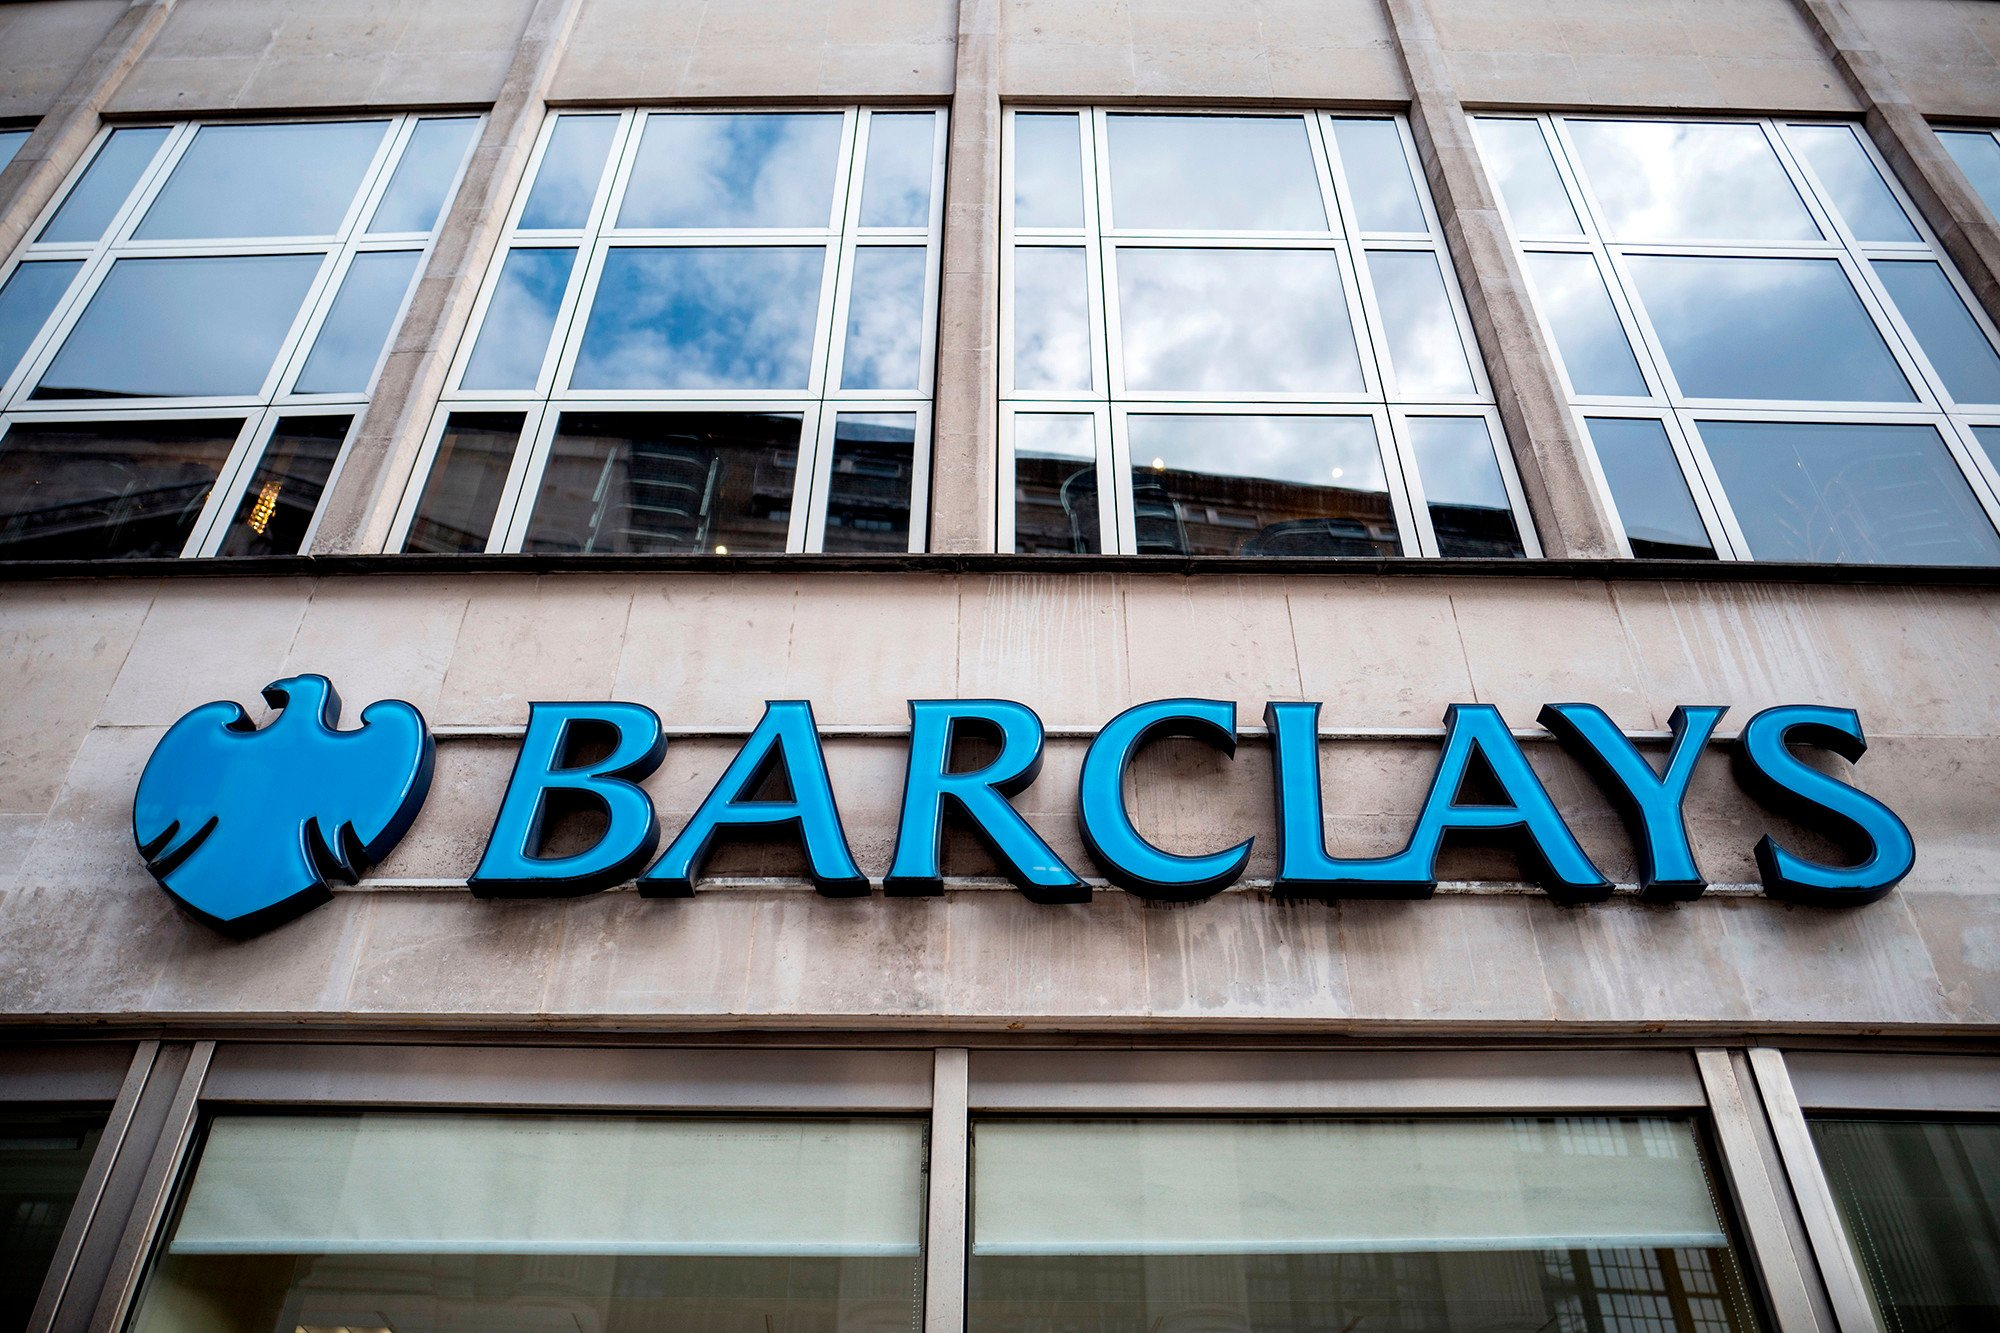 Barclays pays female investment bankers half as much as men